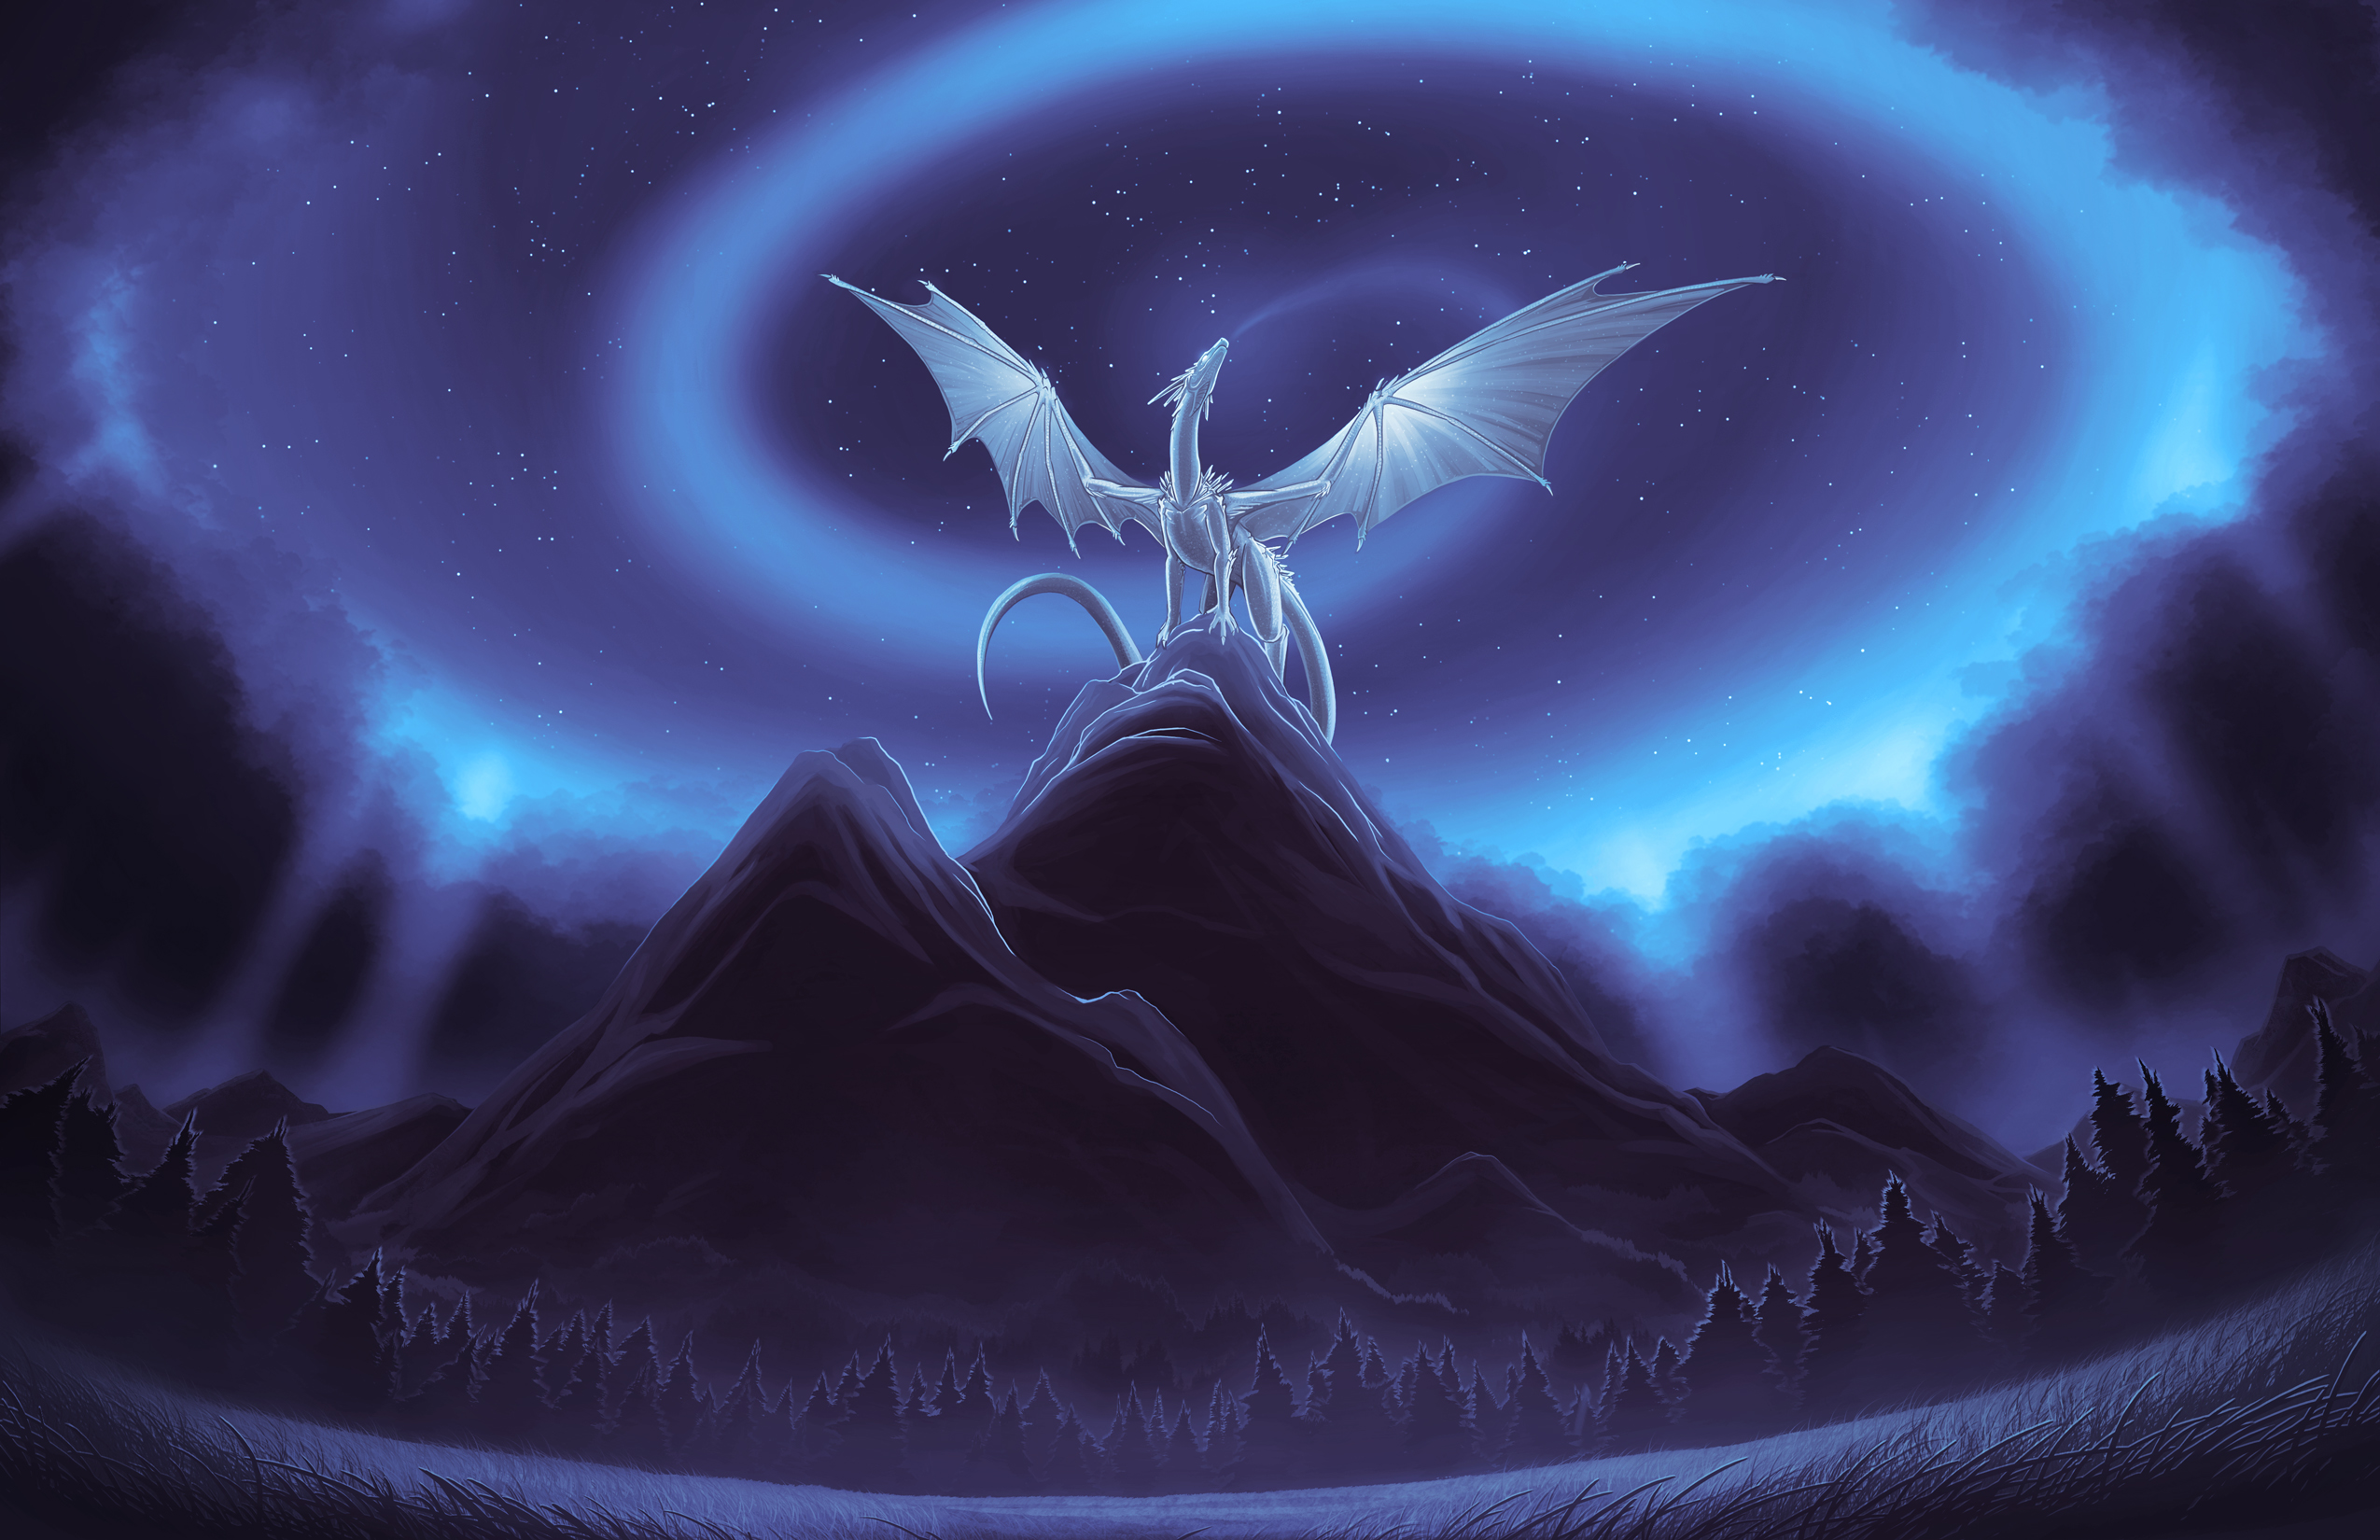 2550x1650 White Dragon On Mountain, HD Artist, 4k Wallpapers, Images ...